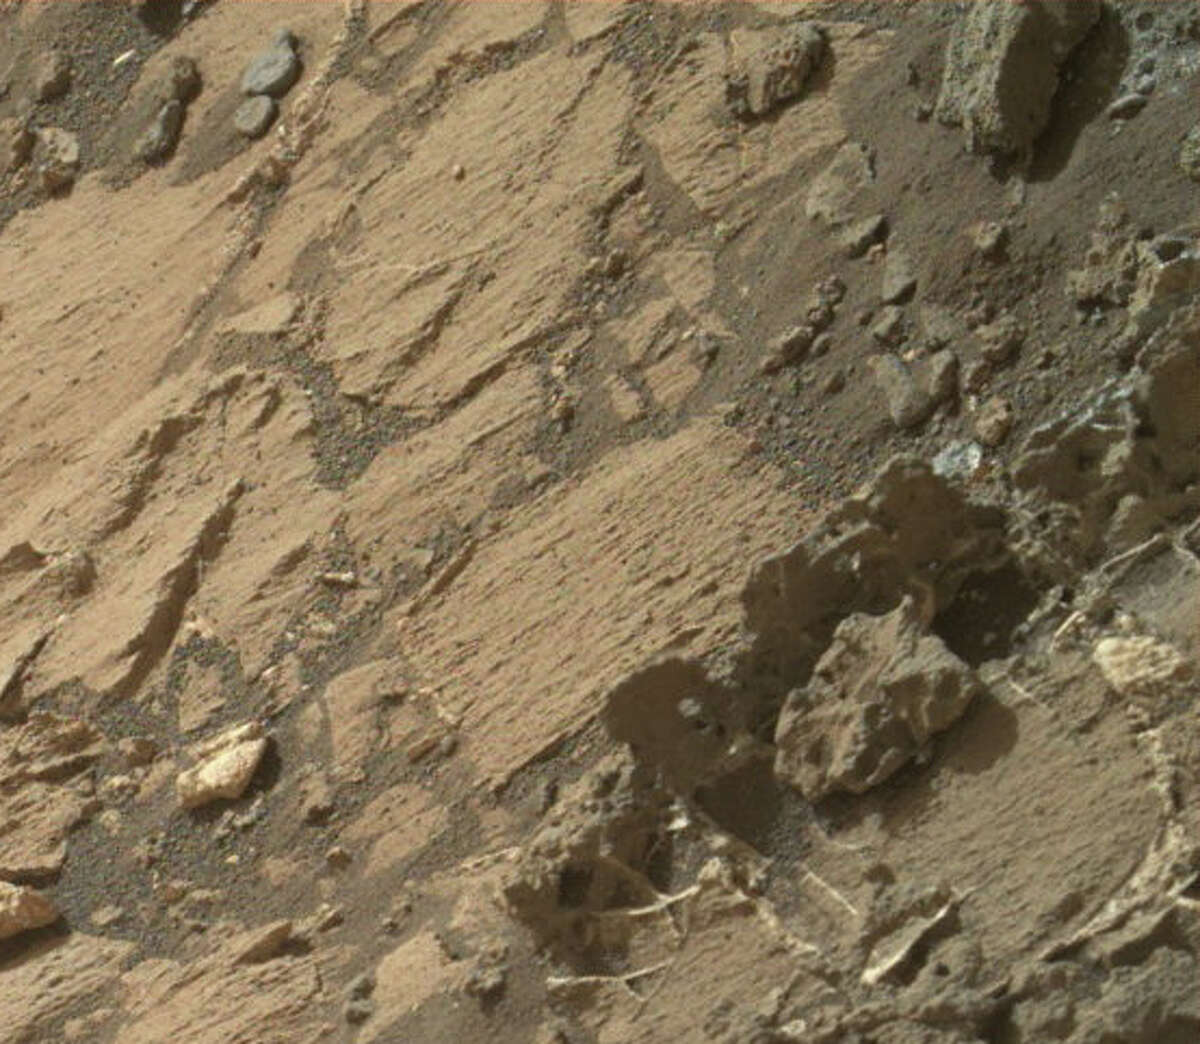 Alien conspiracy site UFO Sightings Daily says that an skeleton remains of a creature on Mars can be seen on this photo taken by the Mars rover Curiosity. The photo zoomed in on the